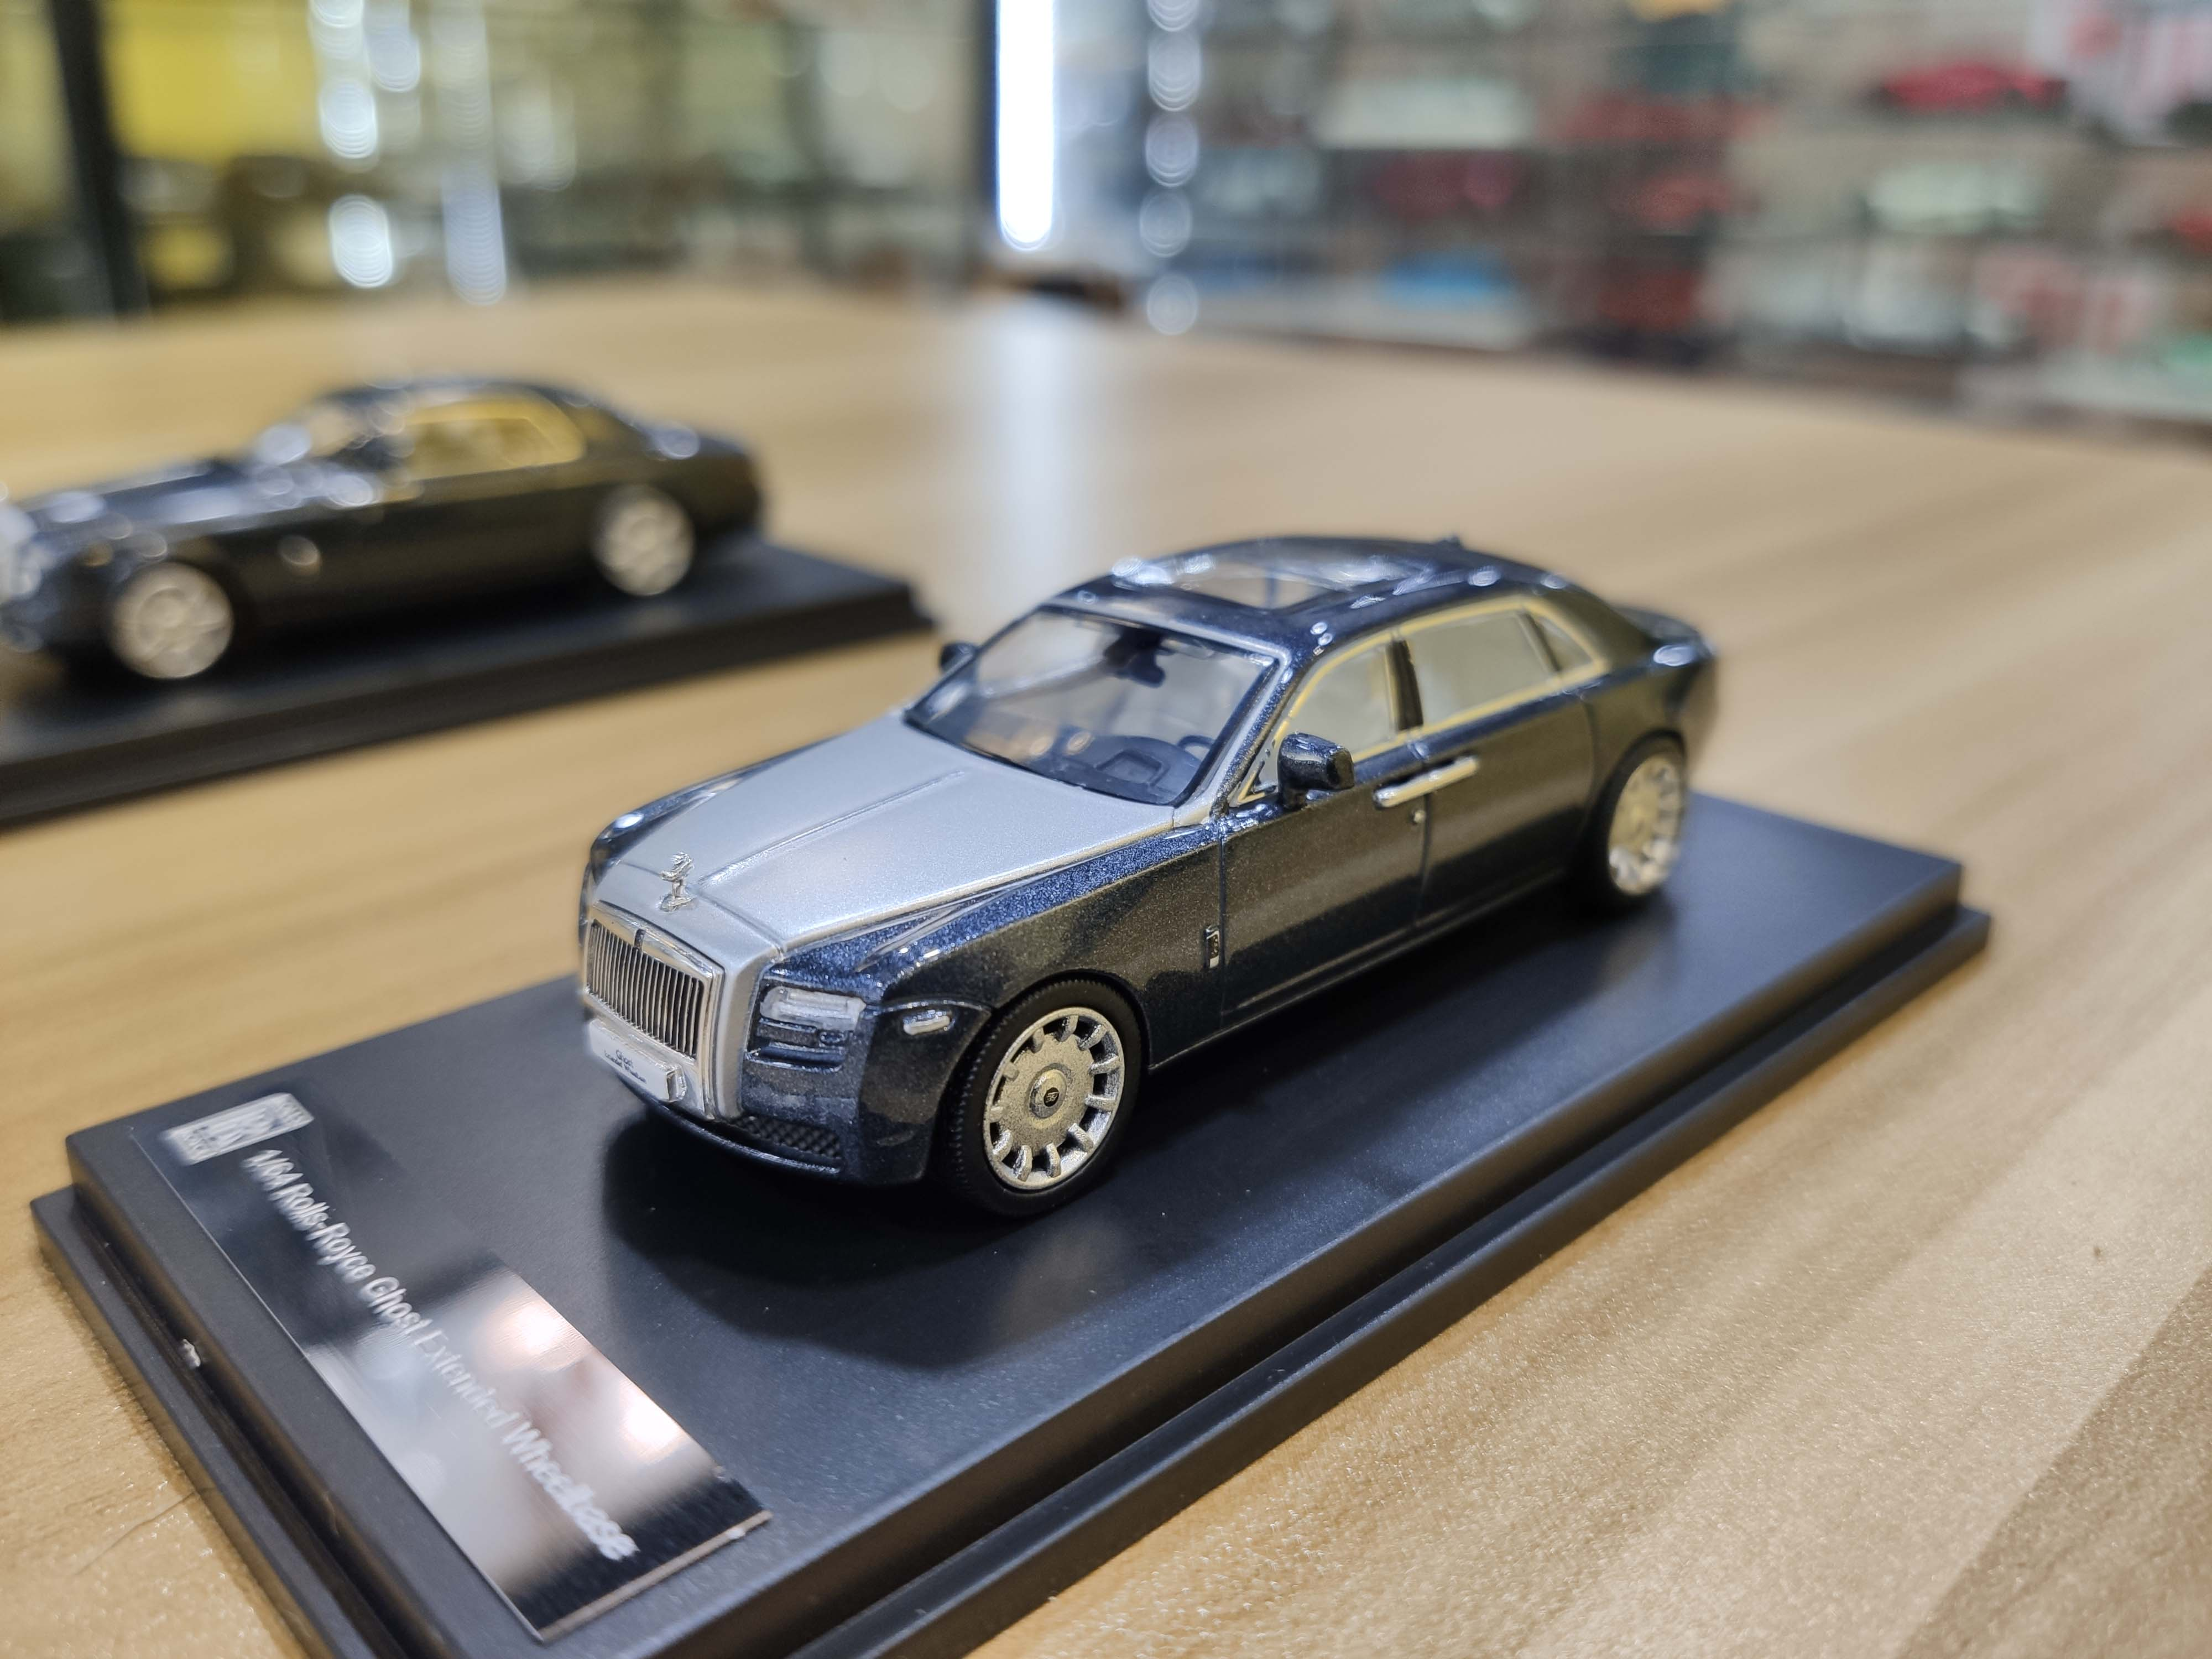 Time Model 1/64 Toy Rolls Royce Ghost Coupe Collection Model Car Supercar Vehicle with Case gift for Kids Children